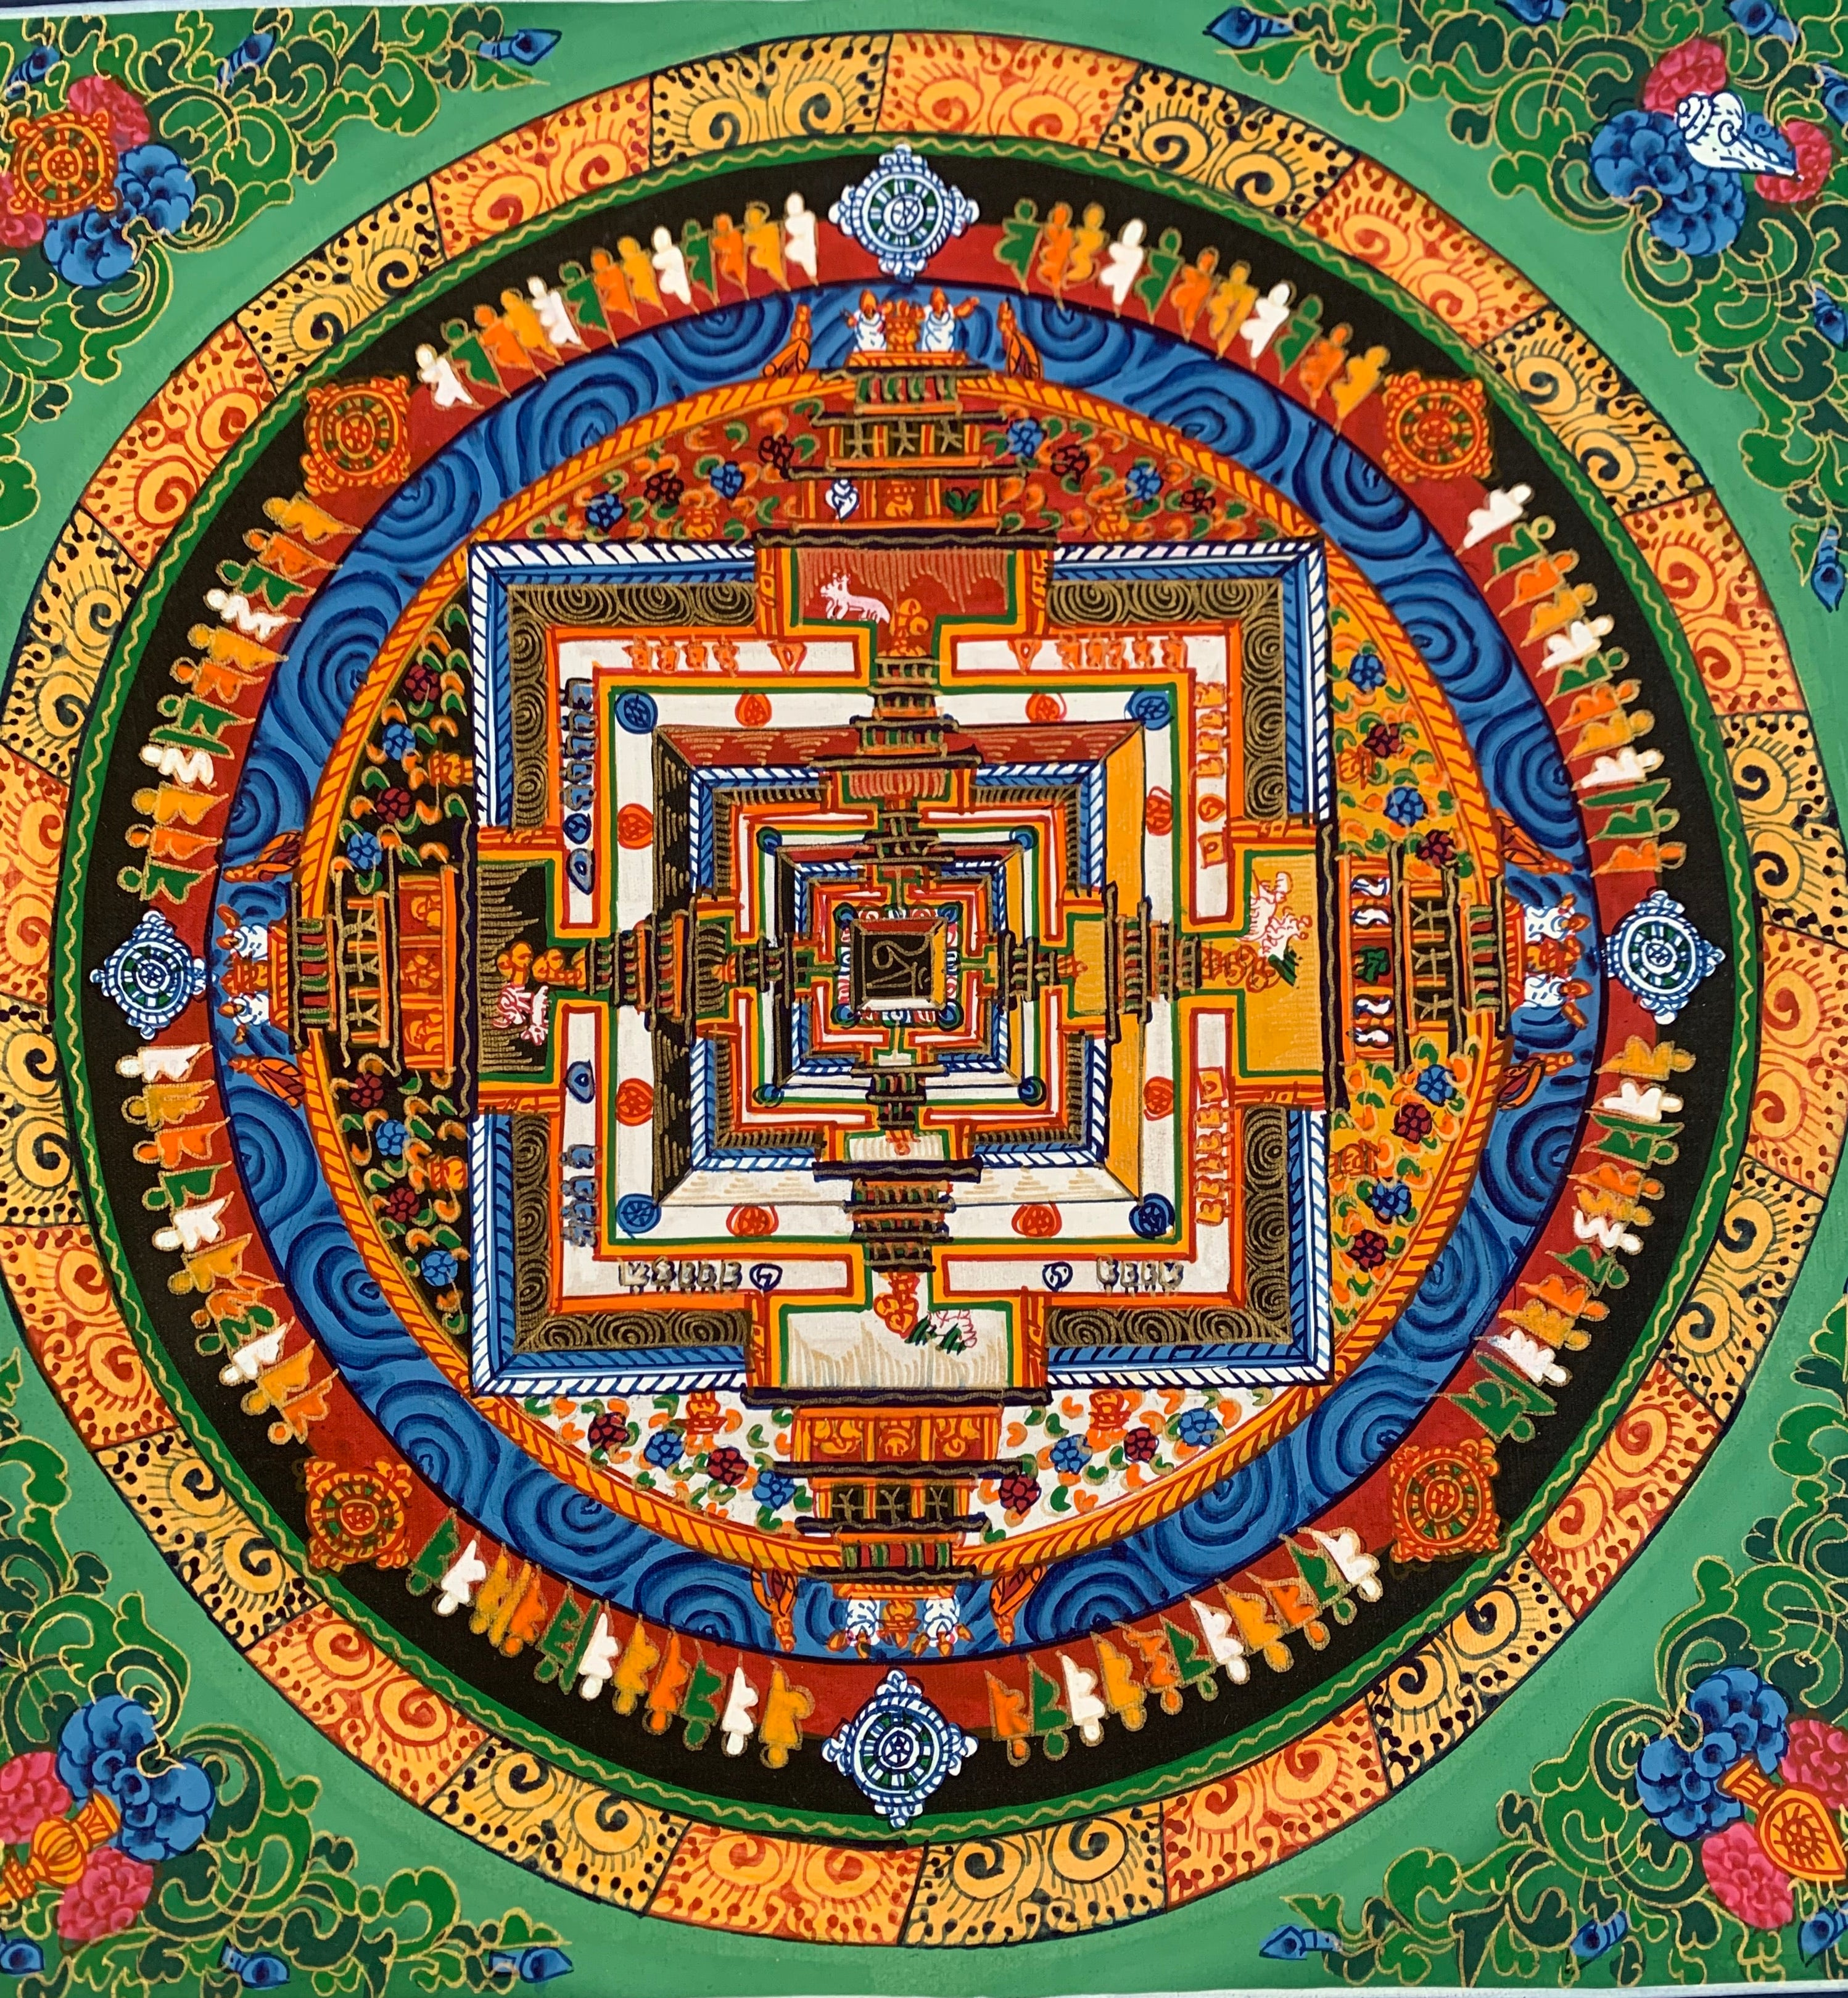 Kalachakra Mandala Green Background Floral Corners 2019C23